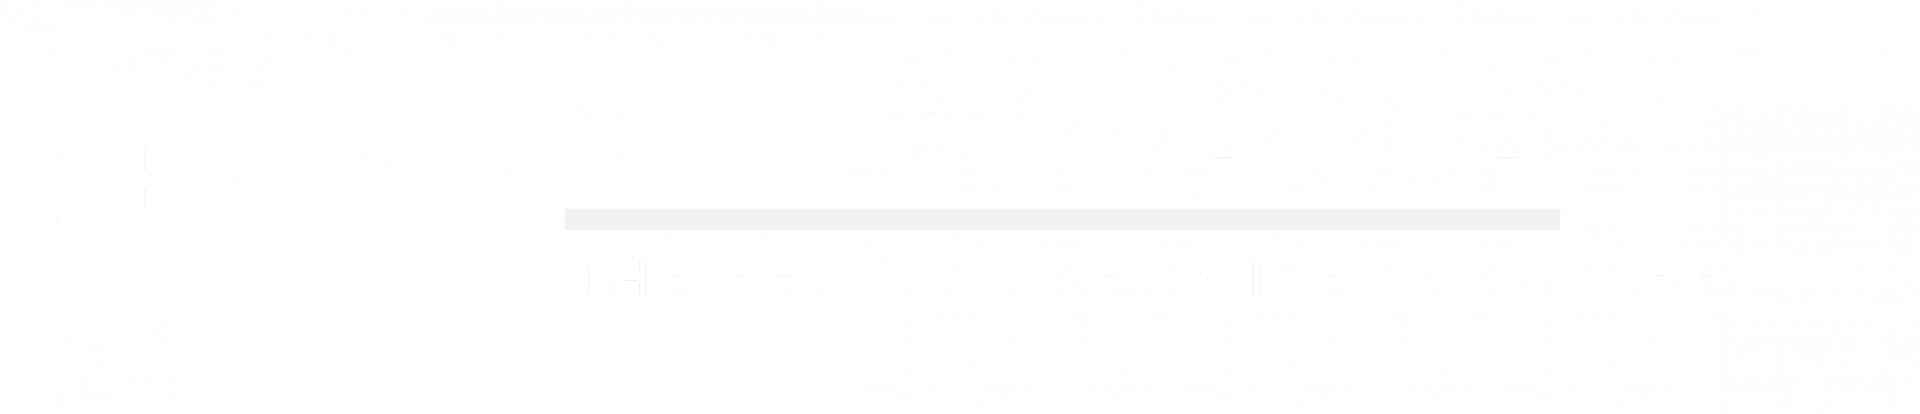 Top Betting Esports